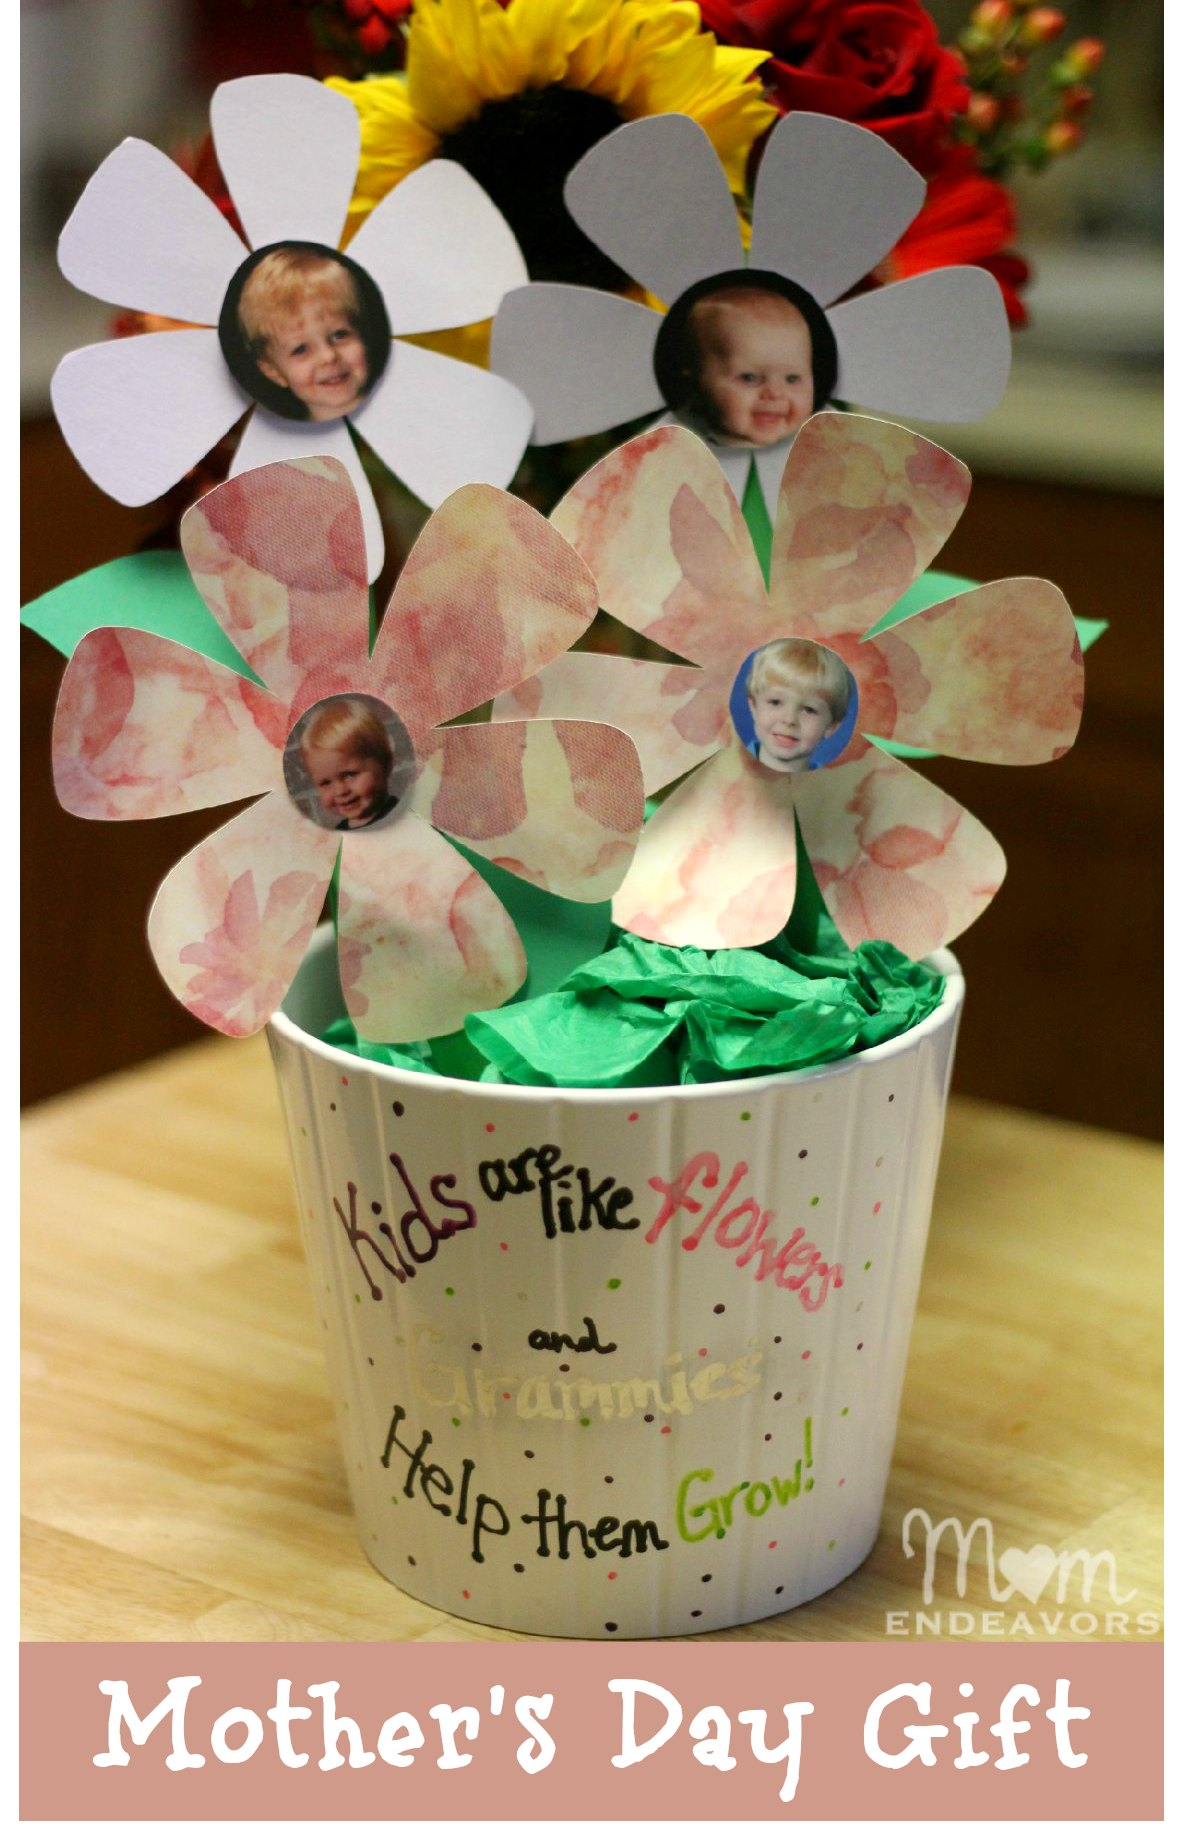 (tot school tuesday) 35 handmade mother's day gifts - See ...